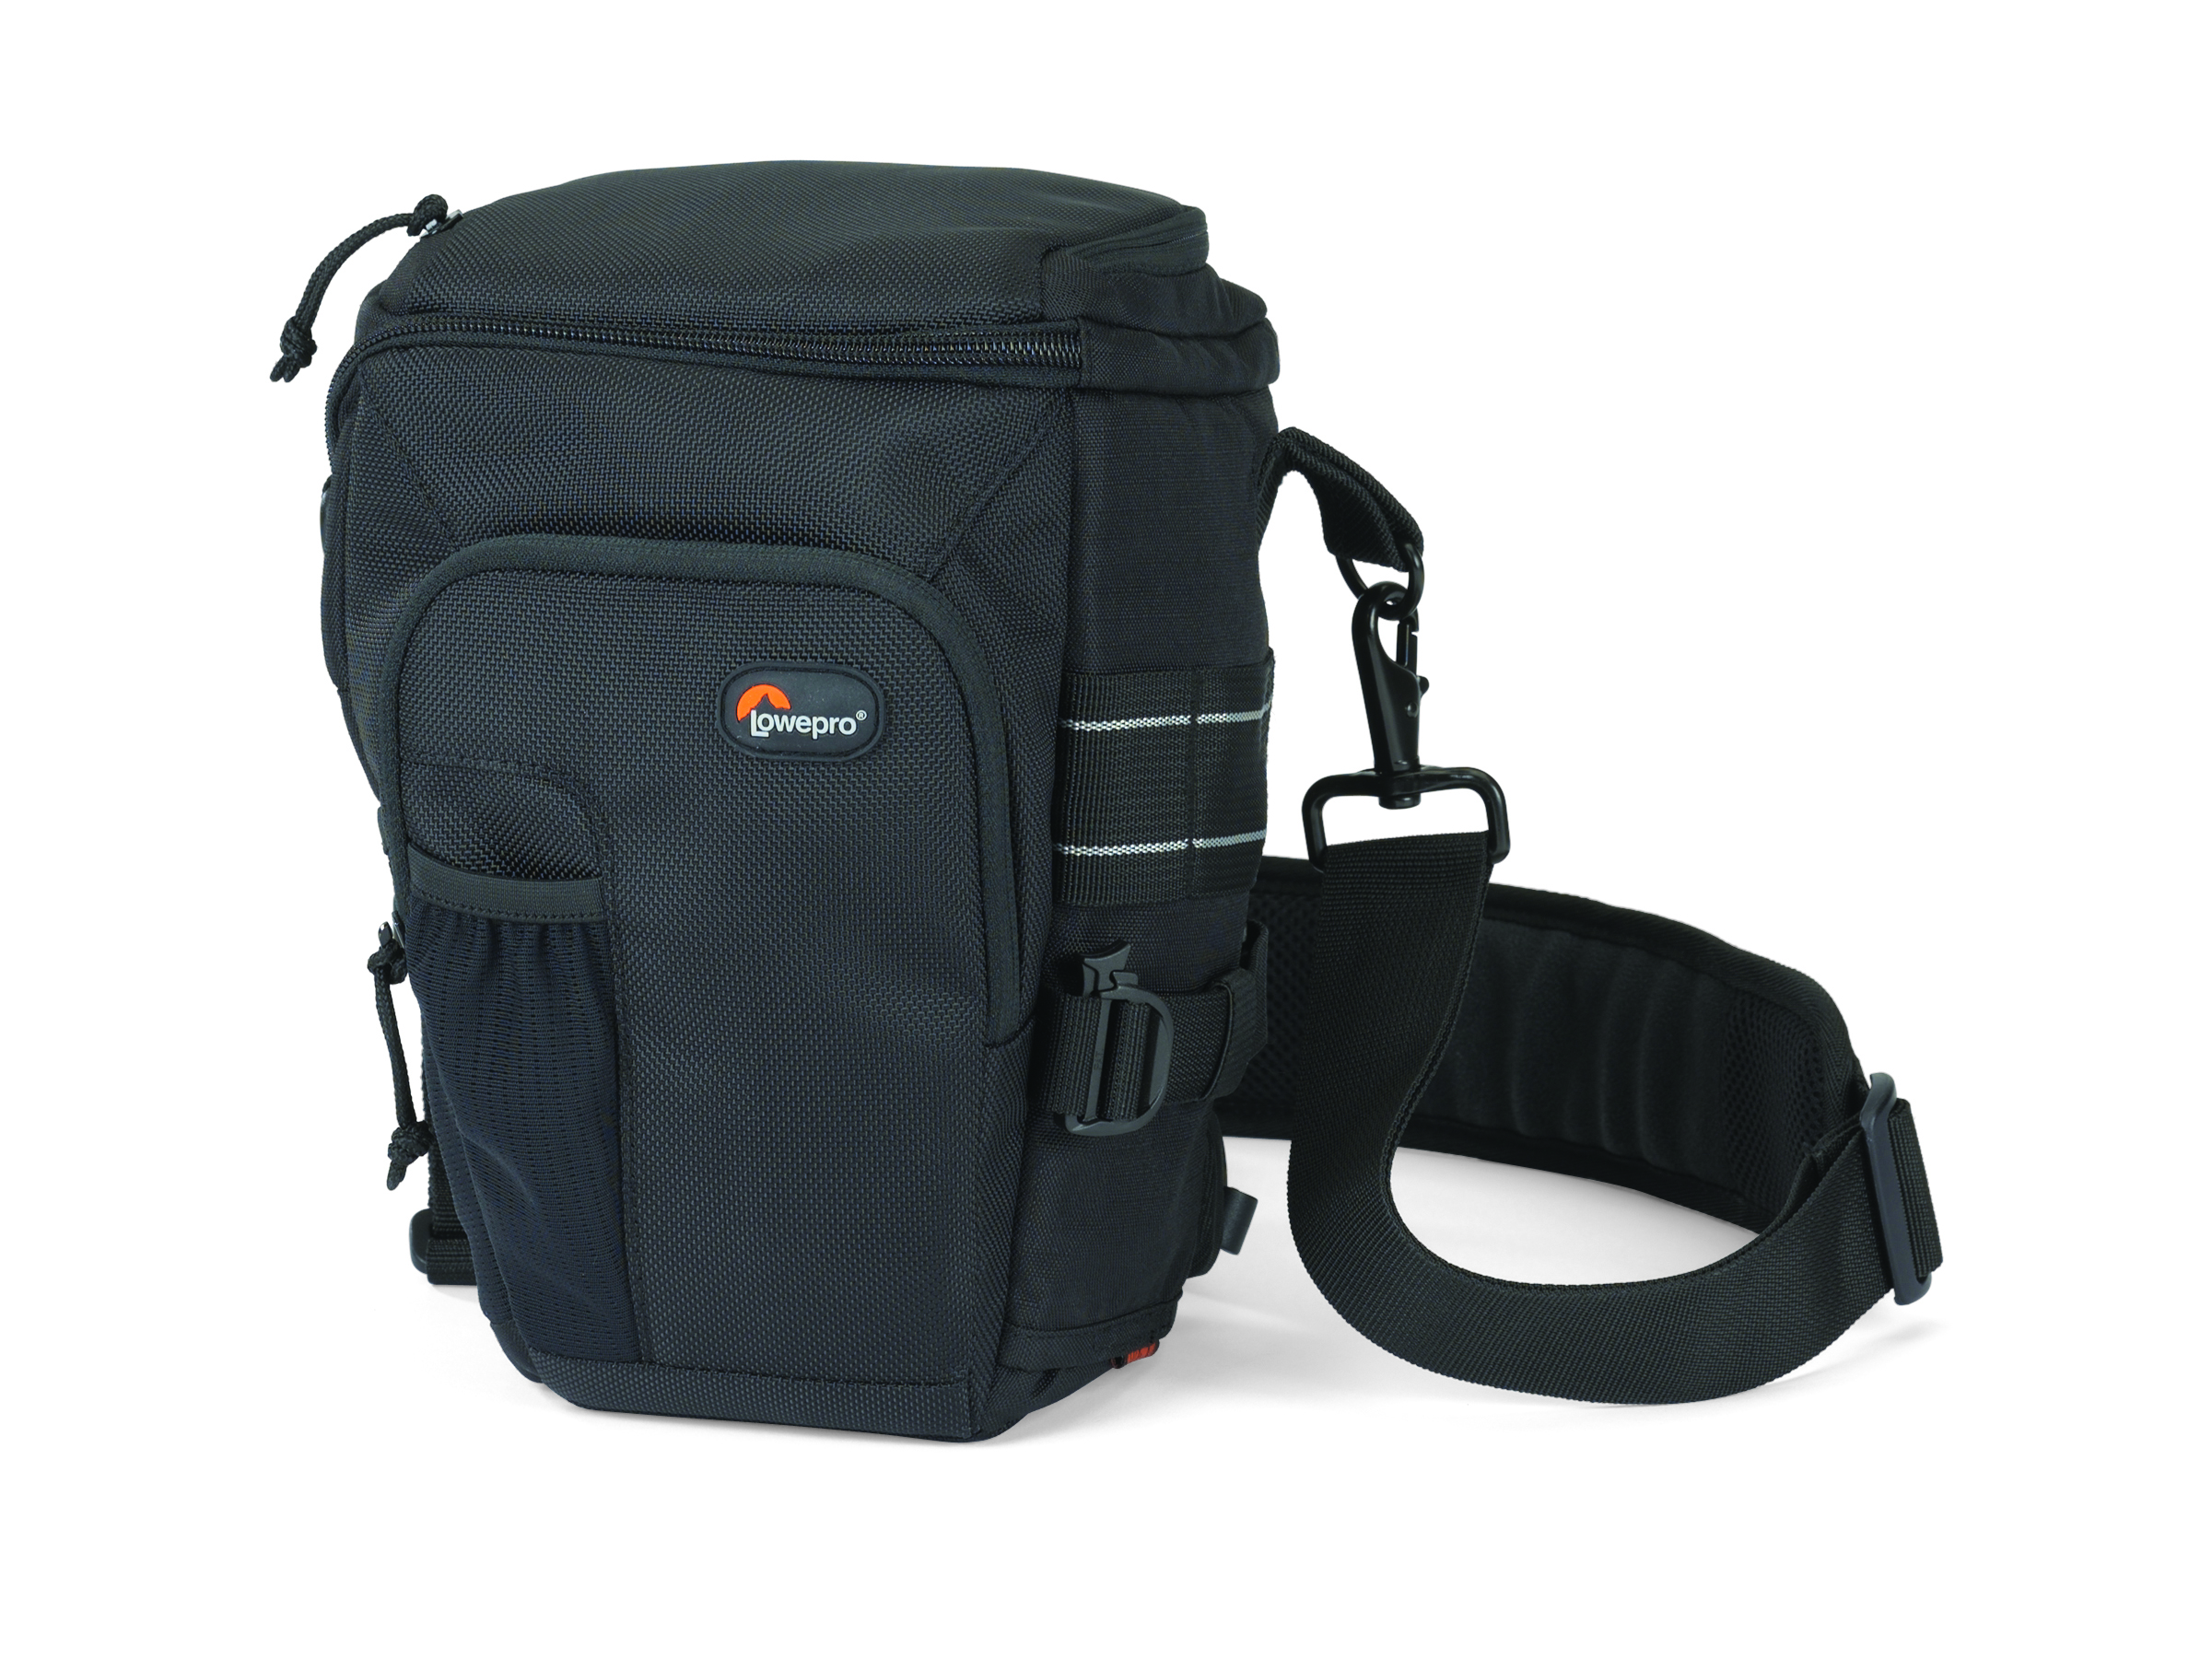 Lowepro's Toploader Pro 70 AW